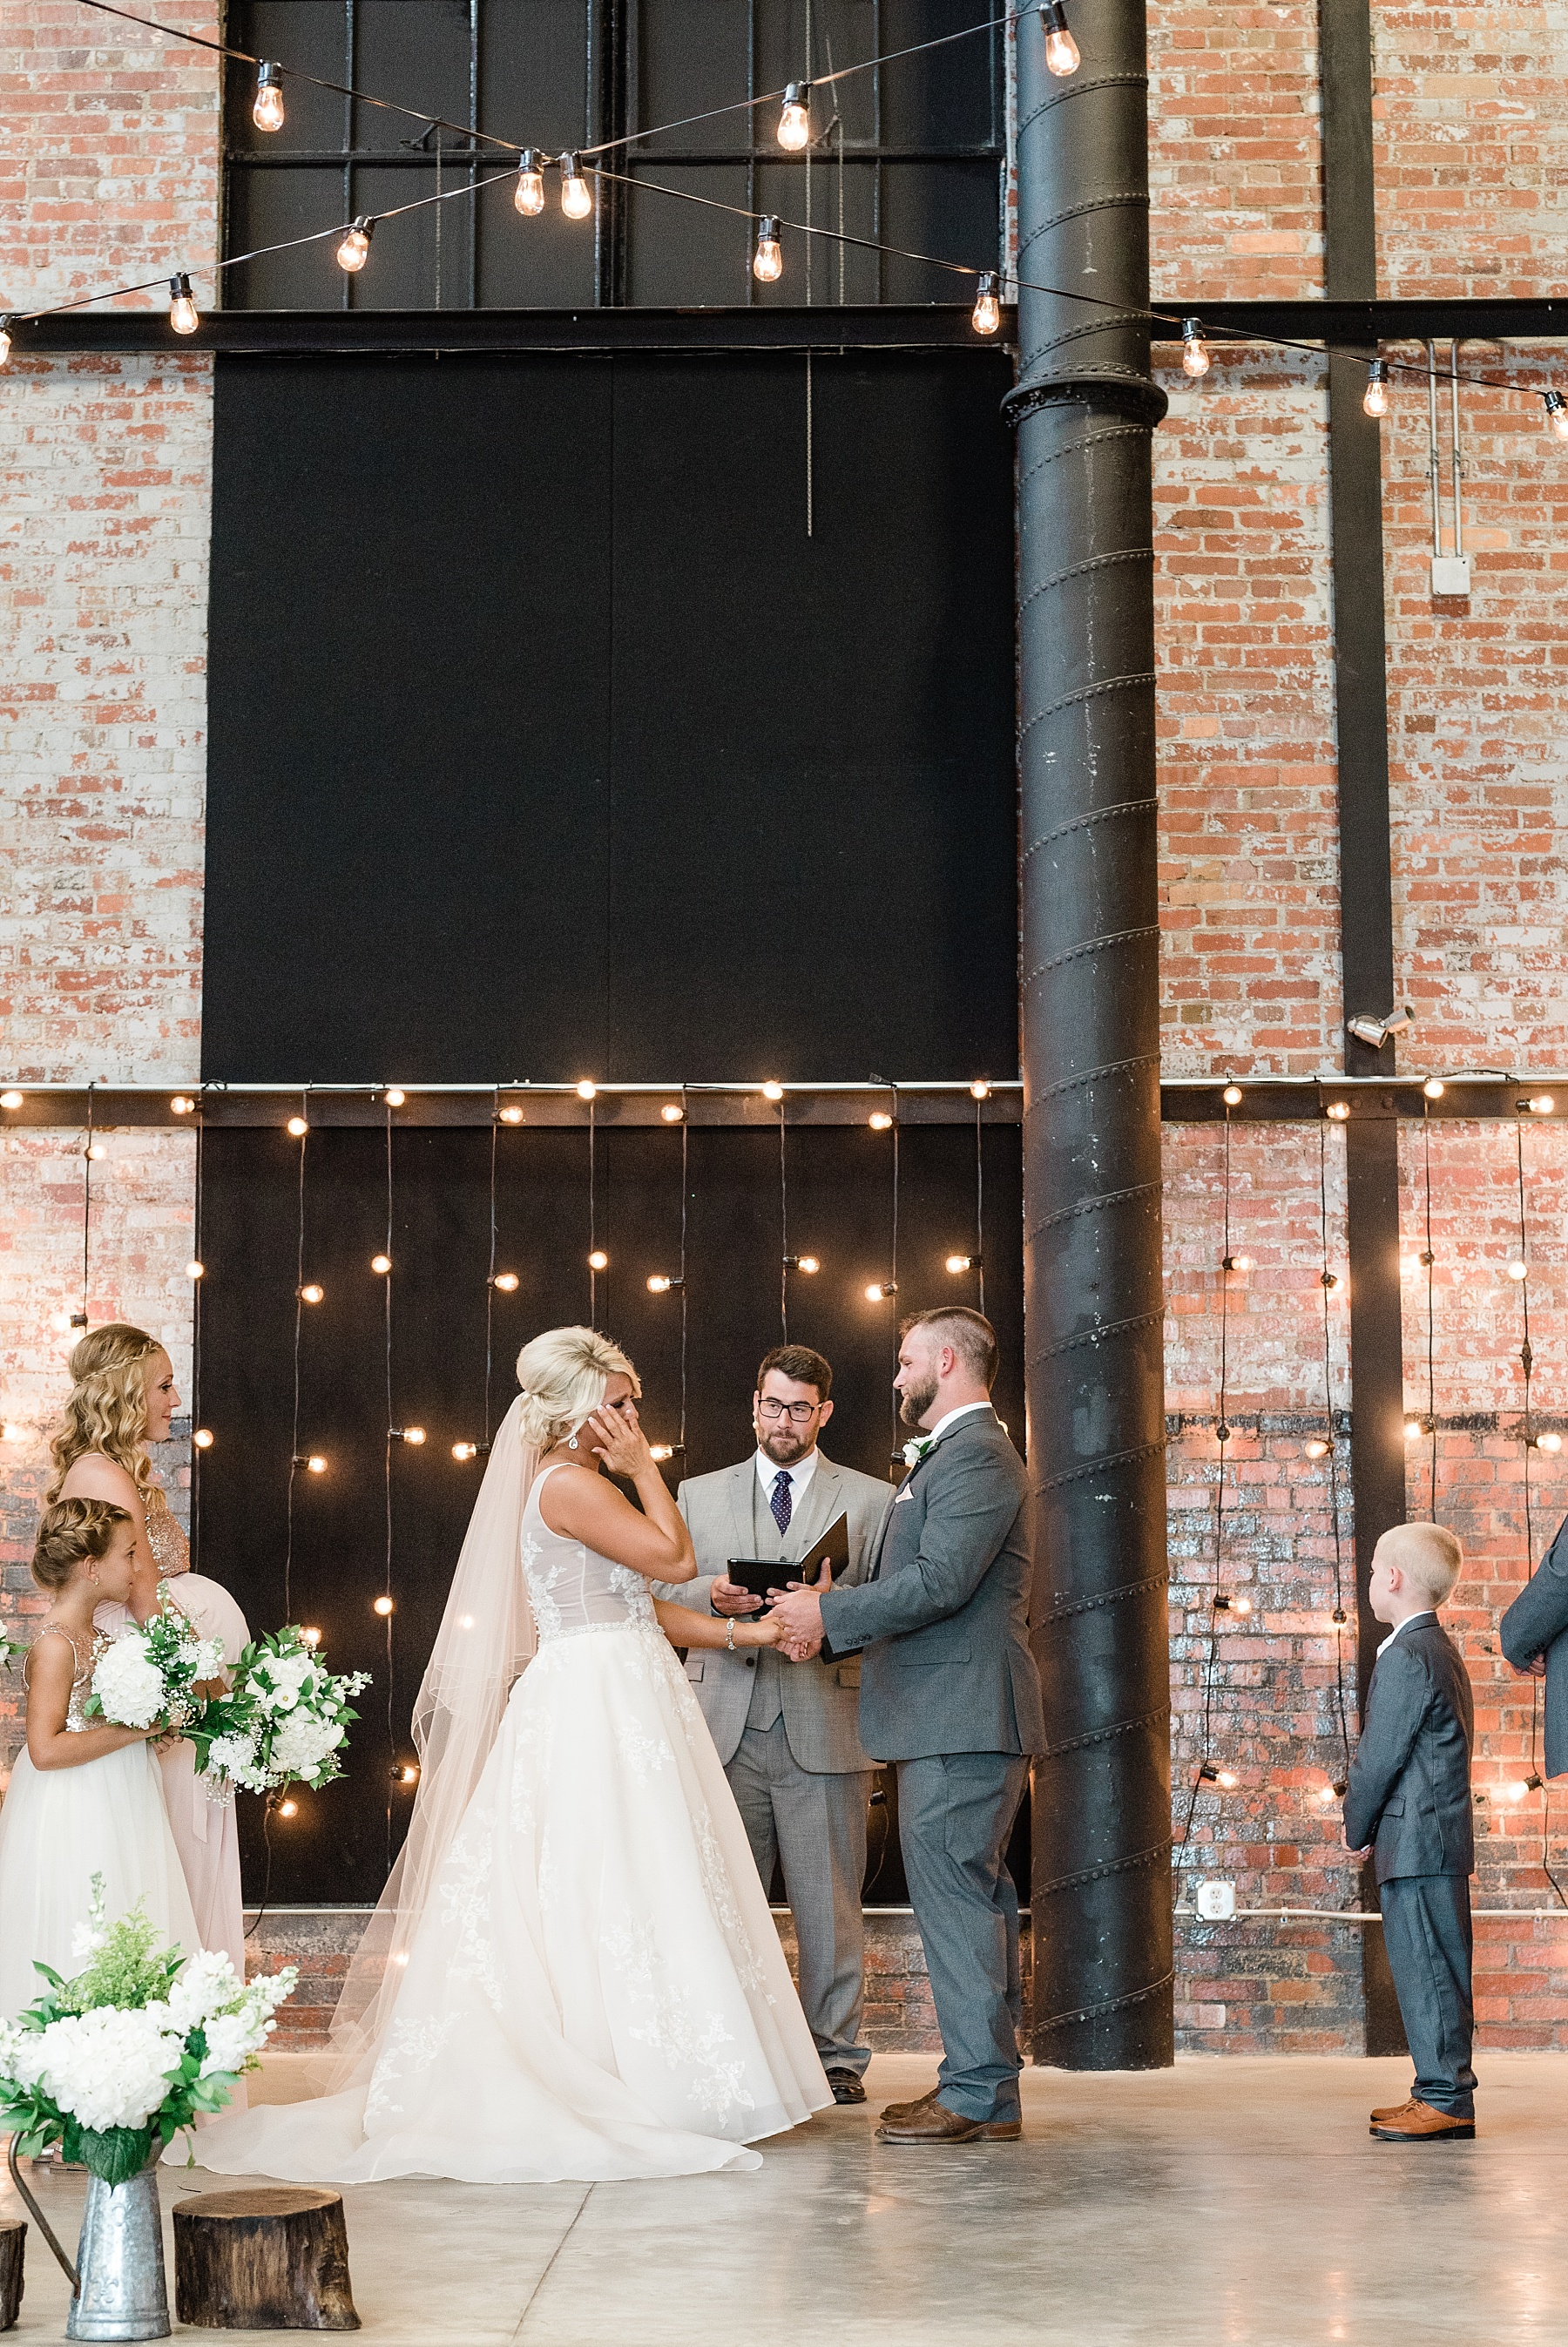 Rose Gold, White, and Greenery High Class Summer Wedding at The Millbottom in Downtown Jefferson City by Kelsi Kliethermes Photography_0043.jpg